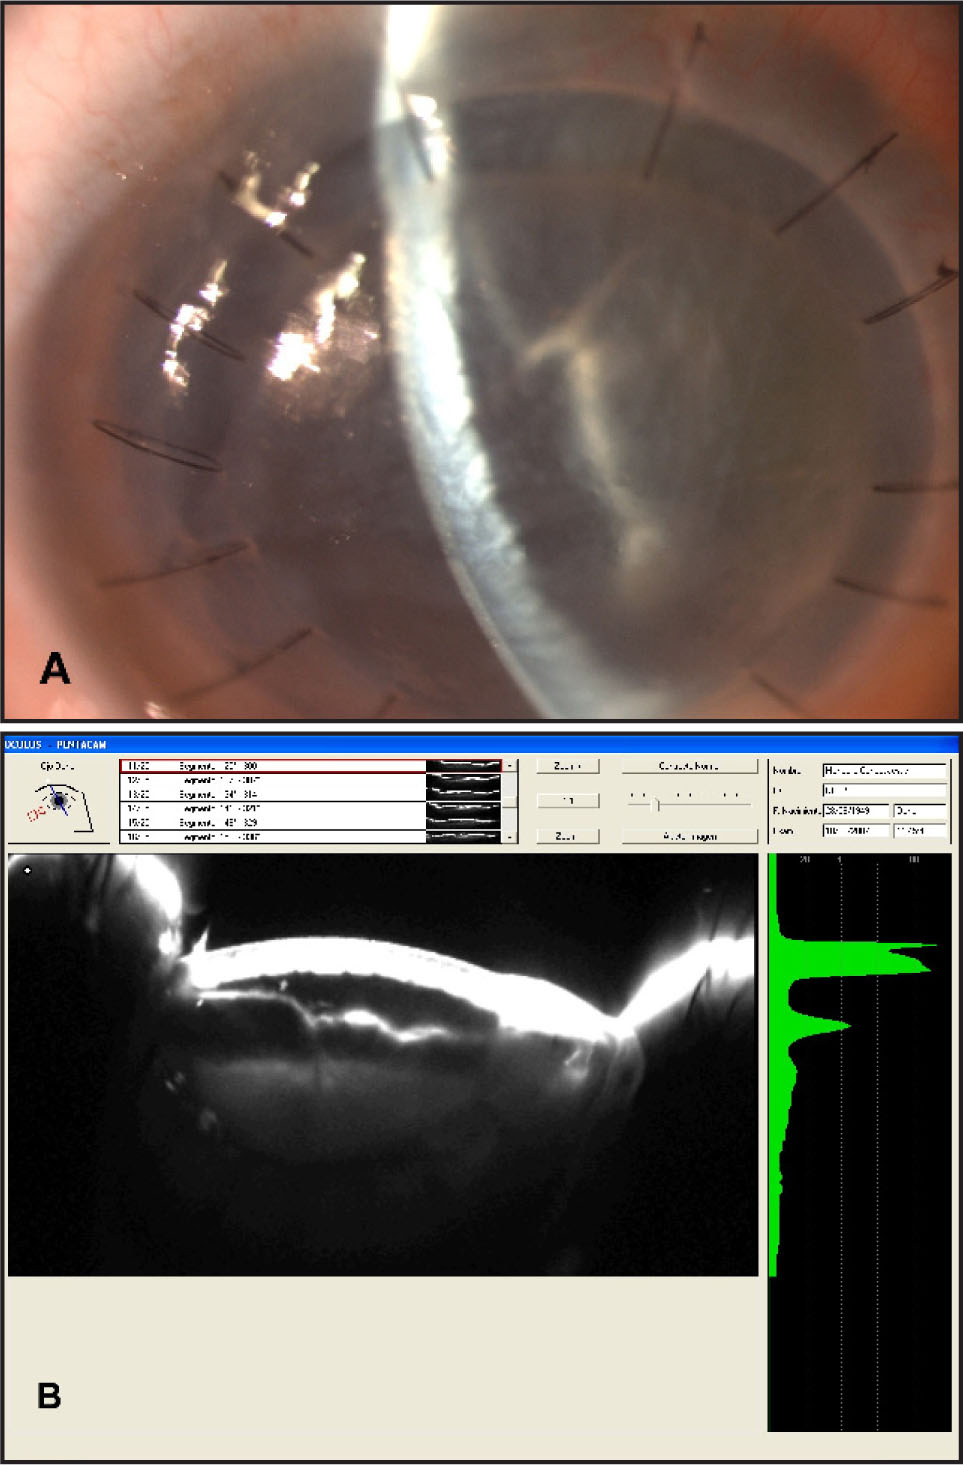 First Postoperative Day. (A) Severe Corneal Edema and Double Anterior Chamber Seen in Slit Lamp Examination. (B) Scheimpflug Images (pentacam): Descemet's Membrane Detachment and Double Anterior Chamber.